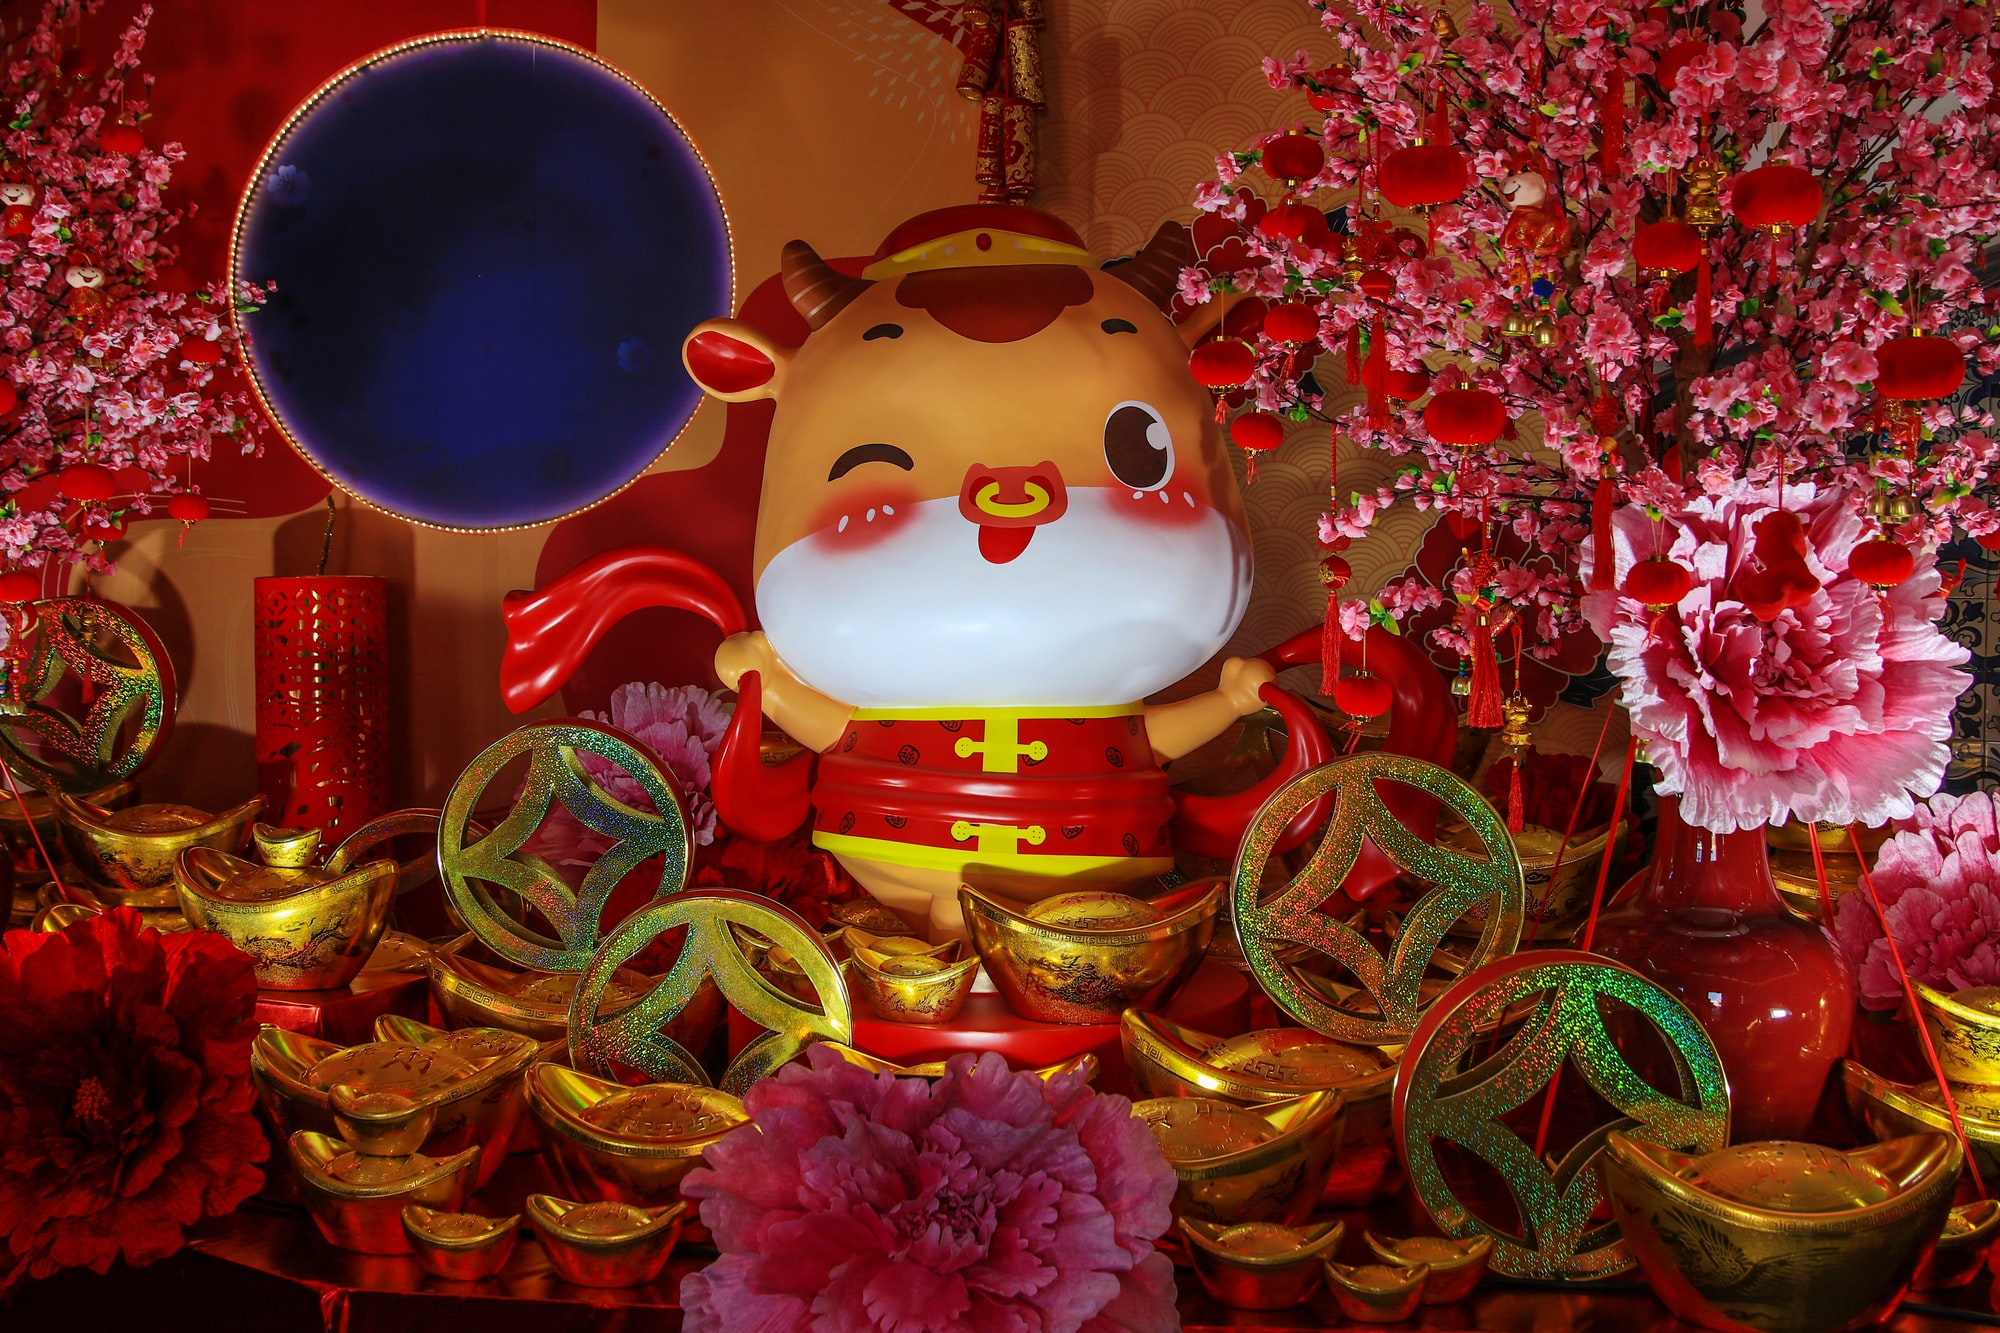 Chinese New Year decorations, Year of the Ox, Macau, China